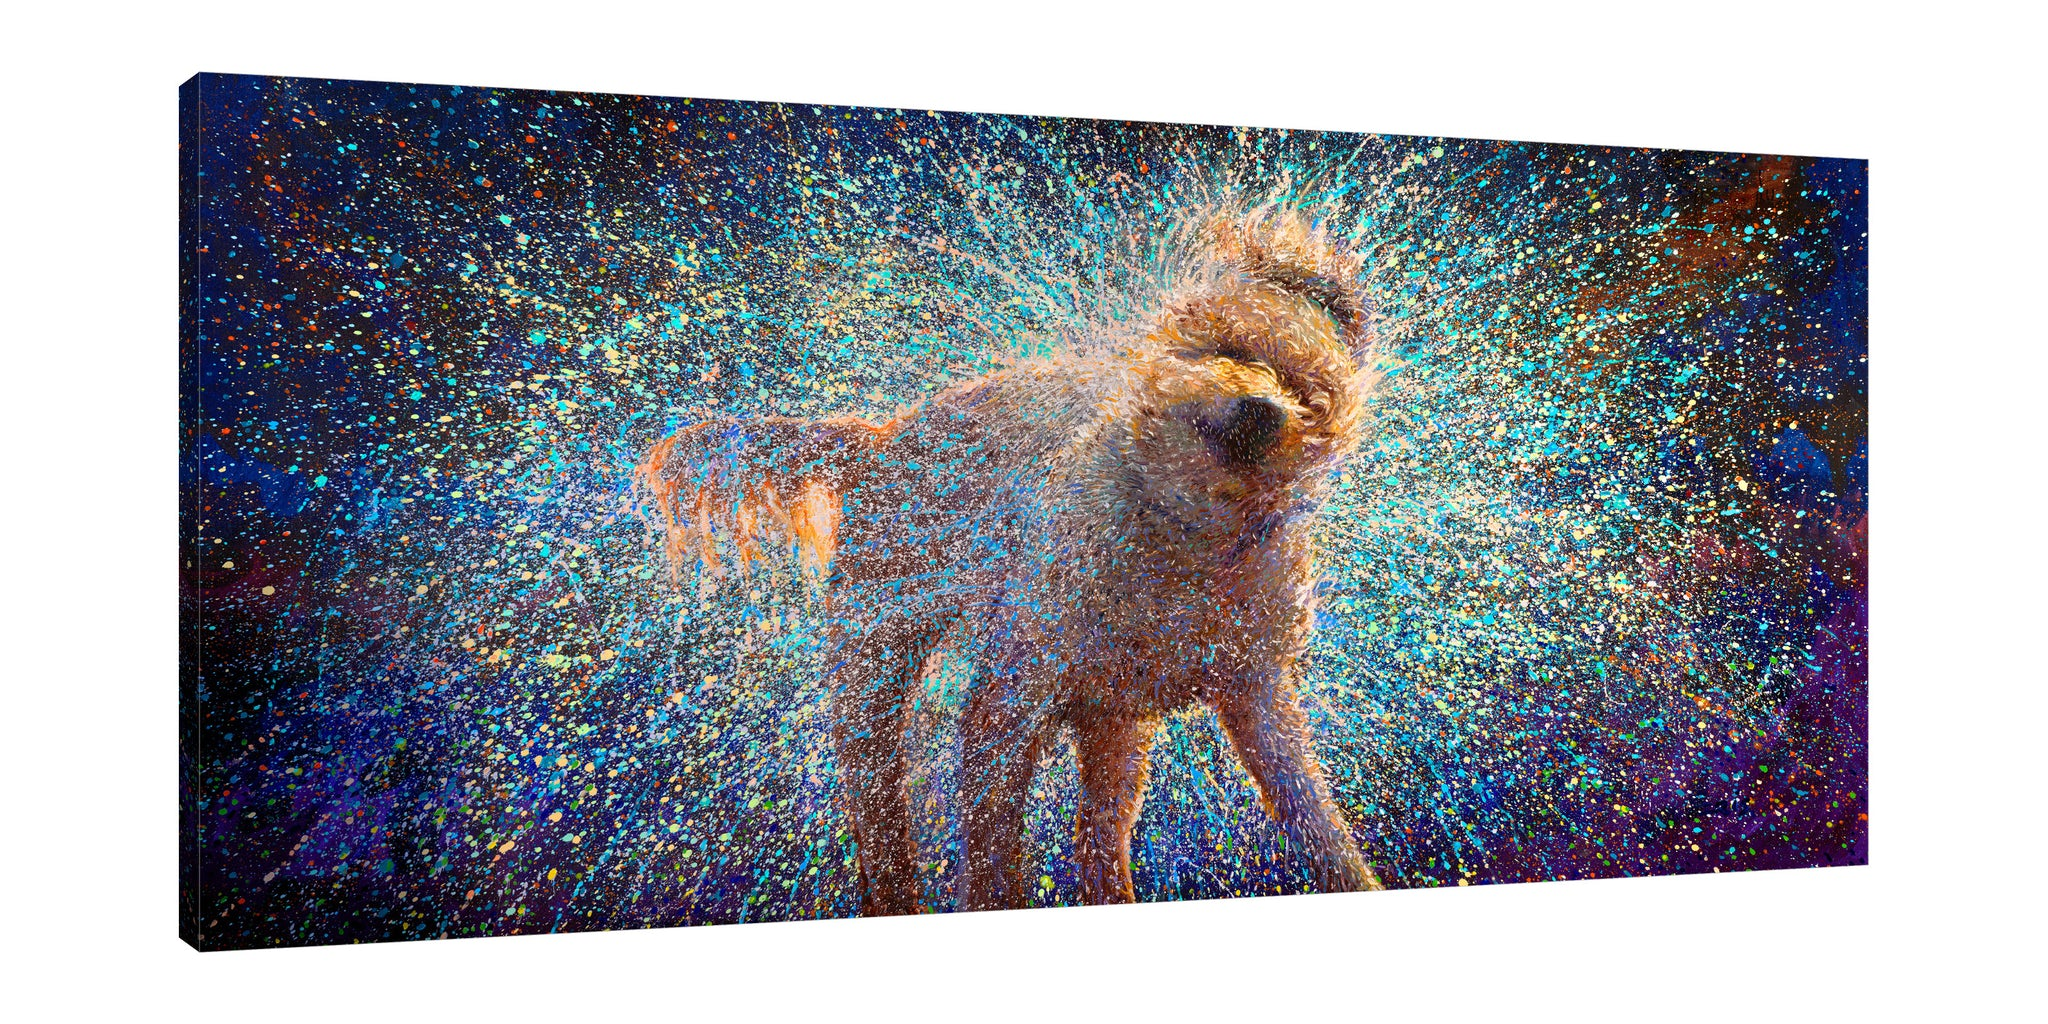 Iris-Scott,Modern & Contemporary,Animals,Impressionism,surreal,finger paint,animal,dog,shaking dog,wet,splatter,